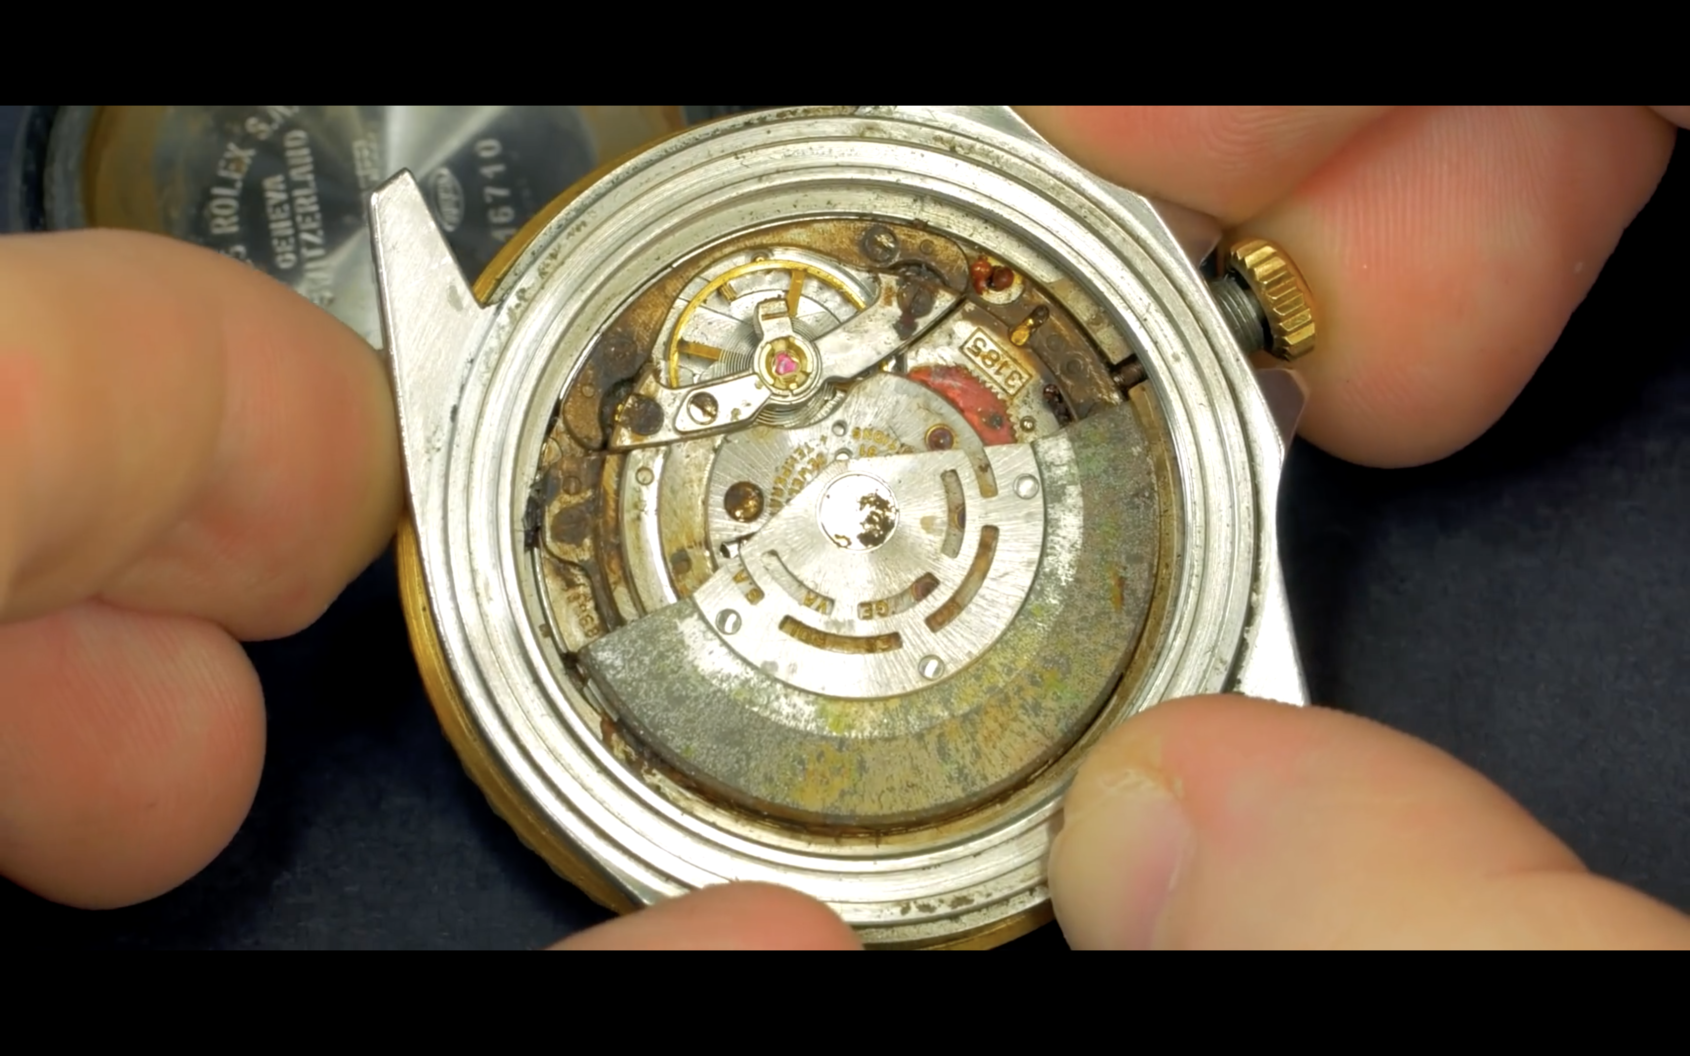 This Rolex restoration video by an Aussie watchmaker hit 1m views in record time, and we can see why…